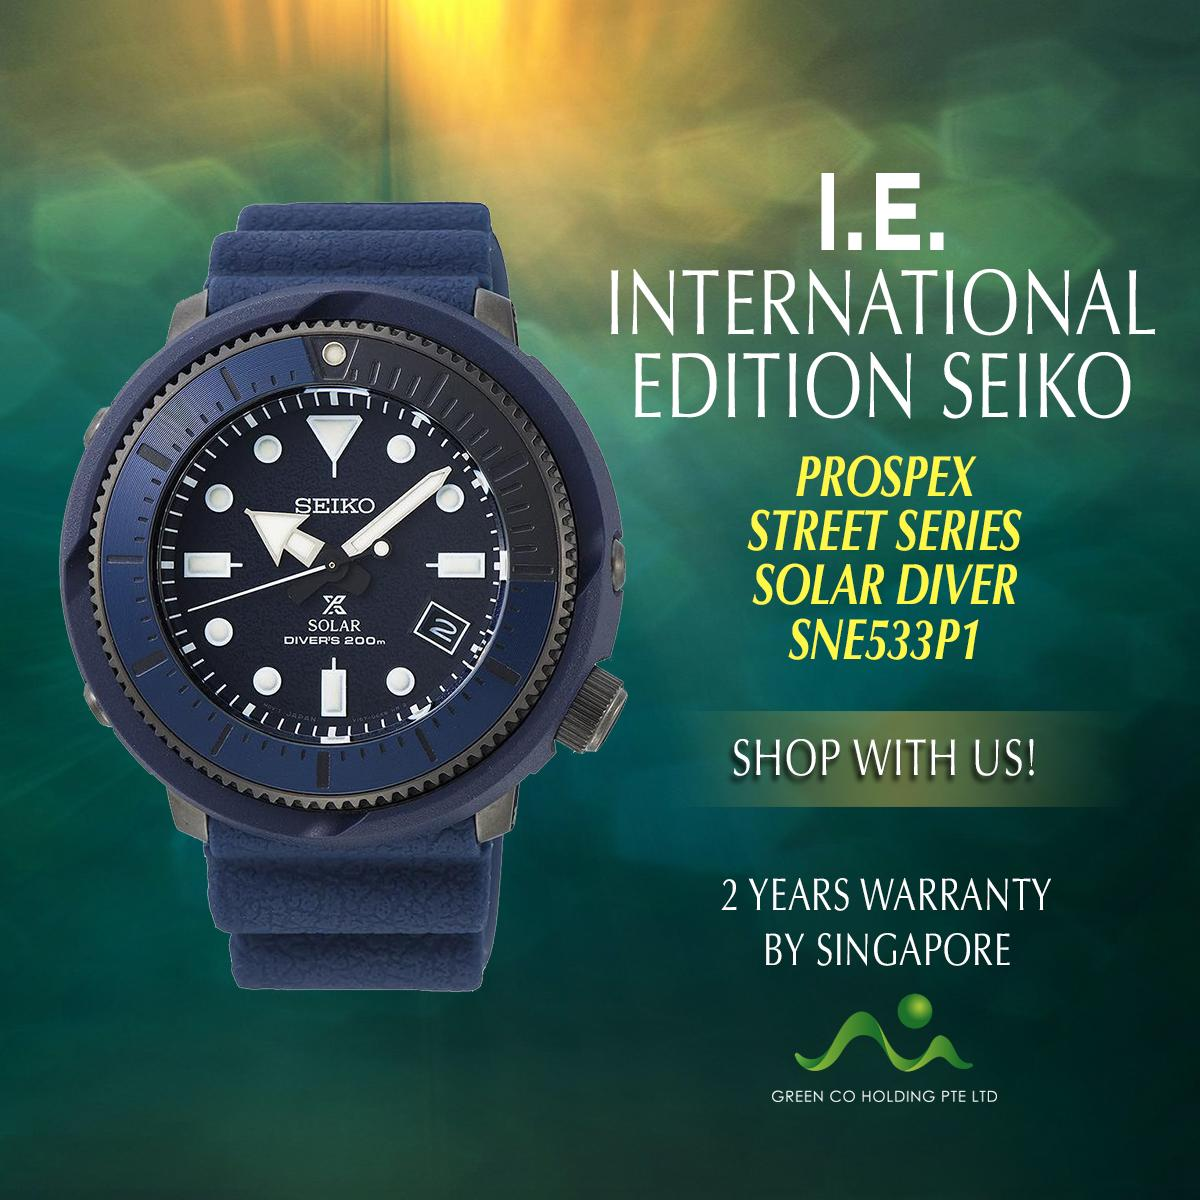 SEIKO INTERNATIONAL EDITION PROSPEX STREET SERIES SNE533P1 BLUE DIAL SOLAR DIVER